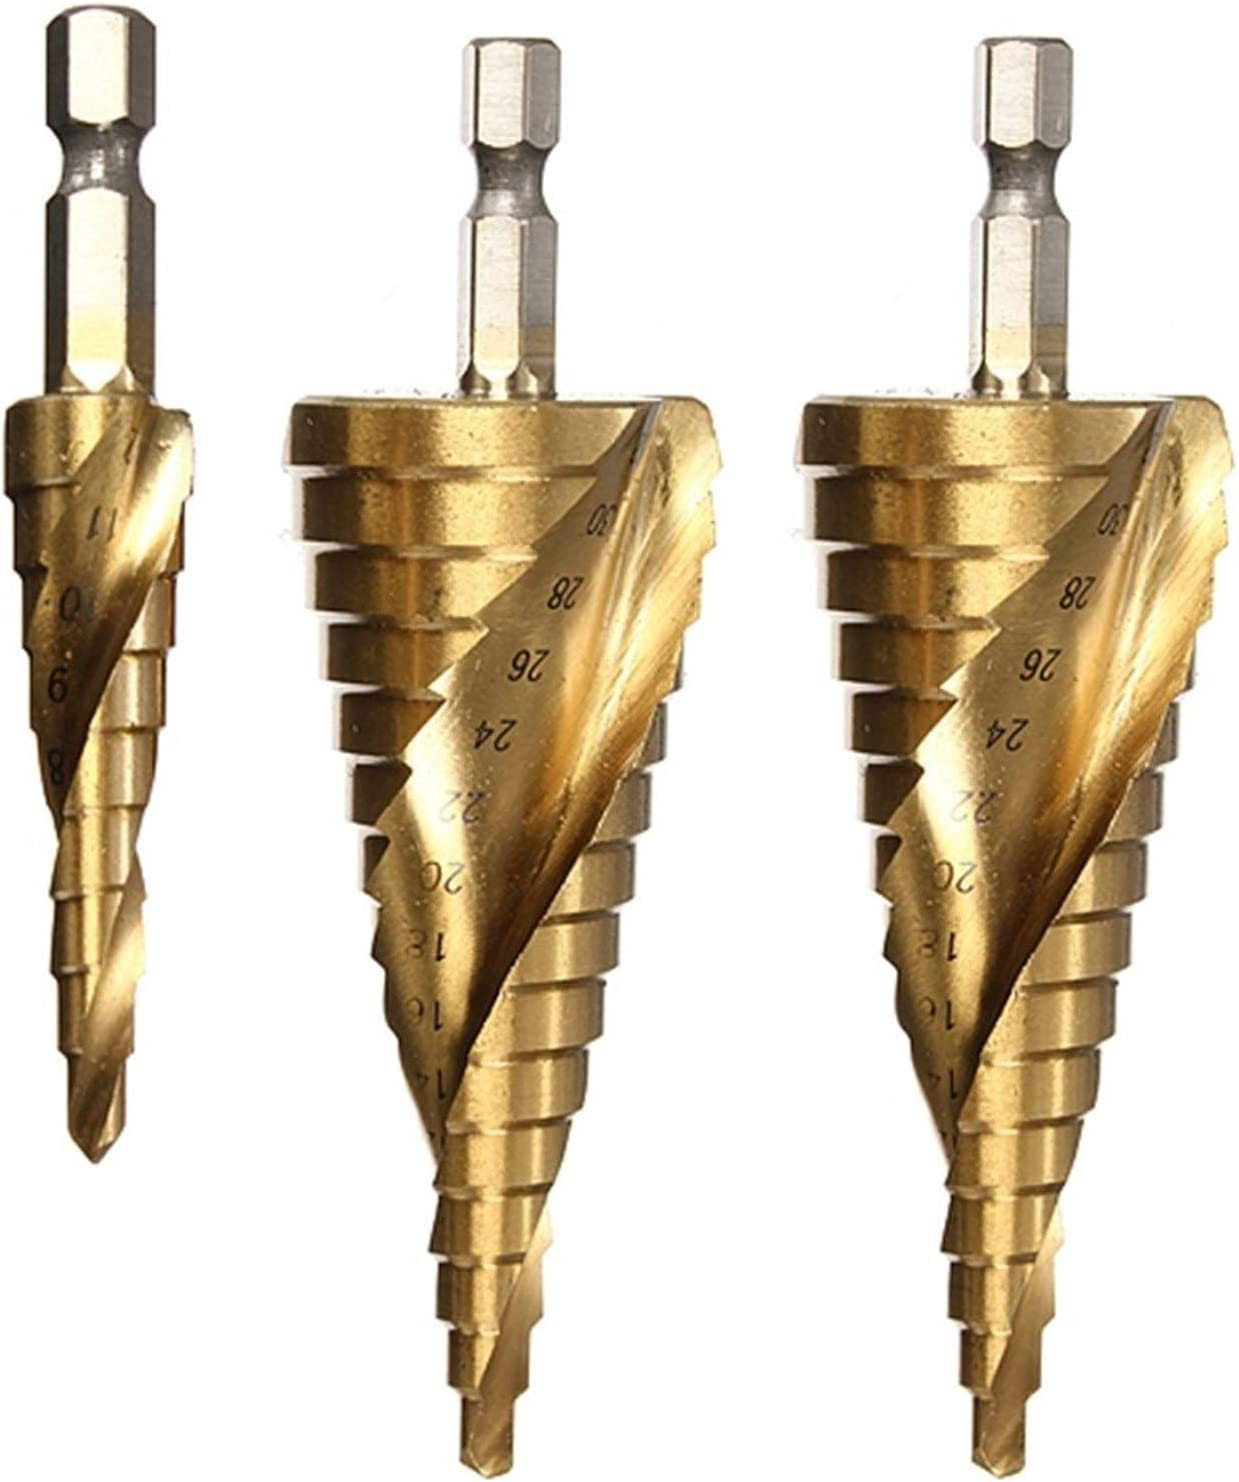 MOUNTAIN MEN Durable Special Campaign 3pcs Golden HSS Grooved Sales Step Spiral Helix D